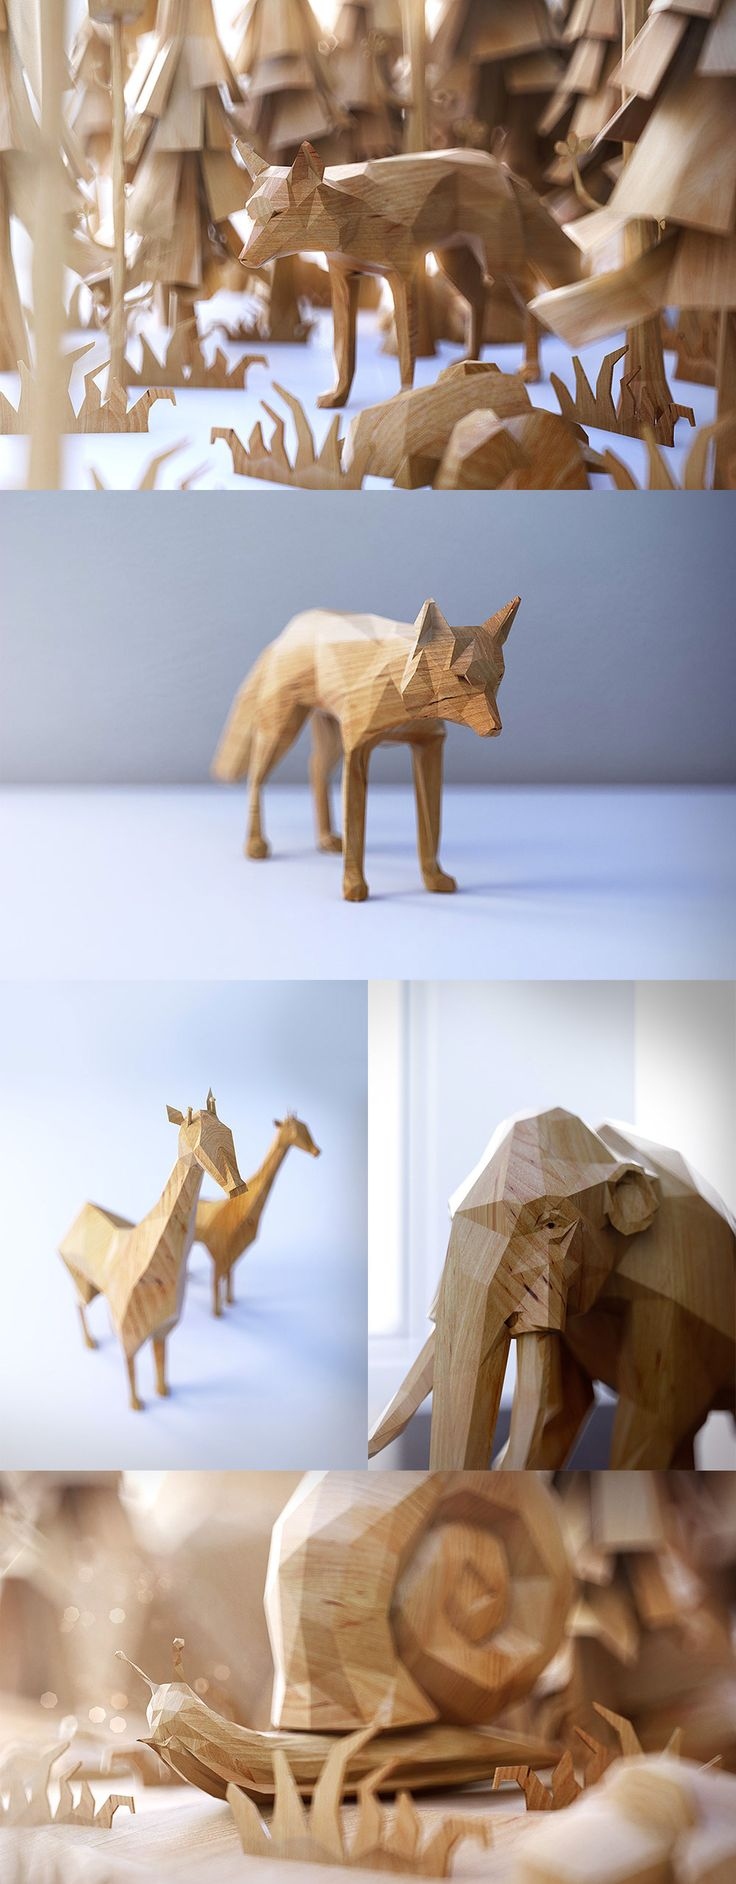 The best wood carving ideas on pinterest